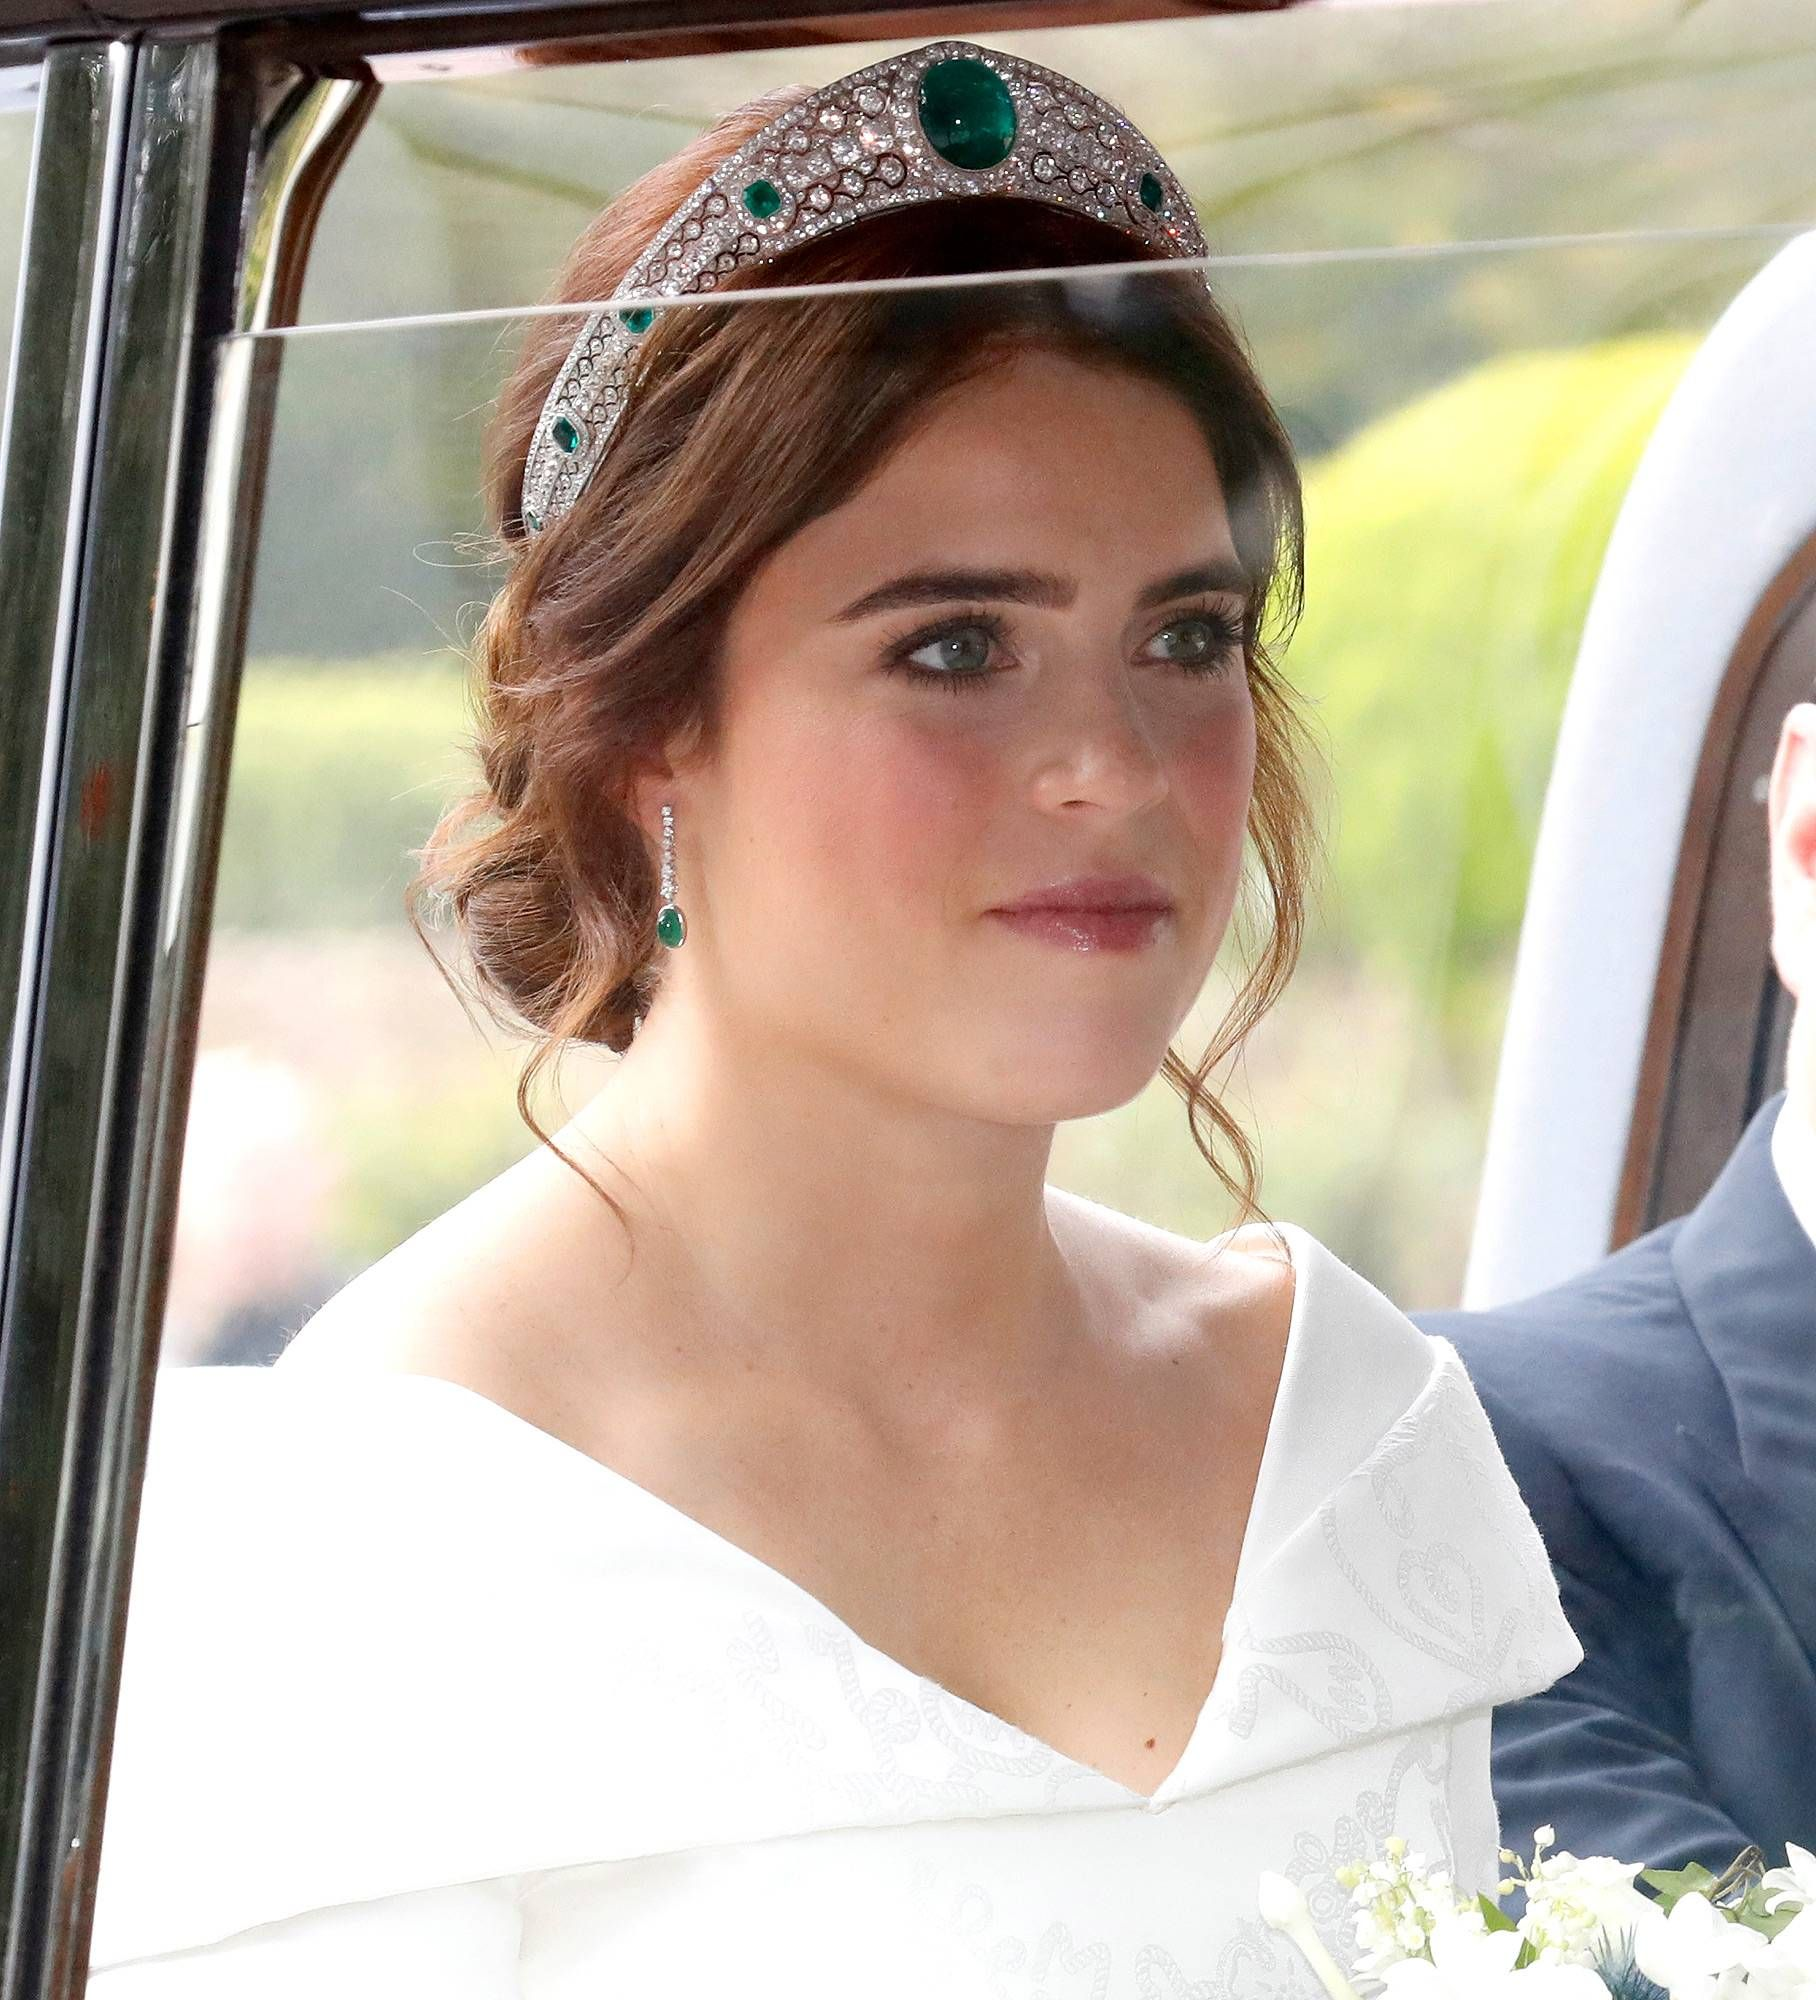 Pin by Rochelle Goldberg on Royals   Princess eugenie